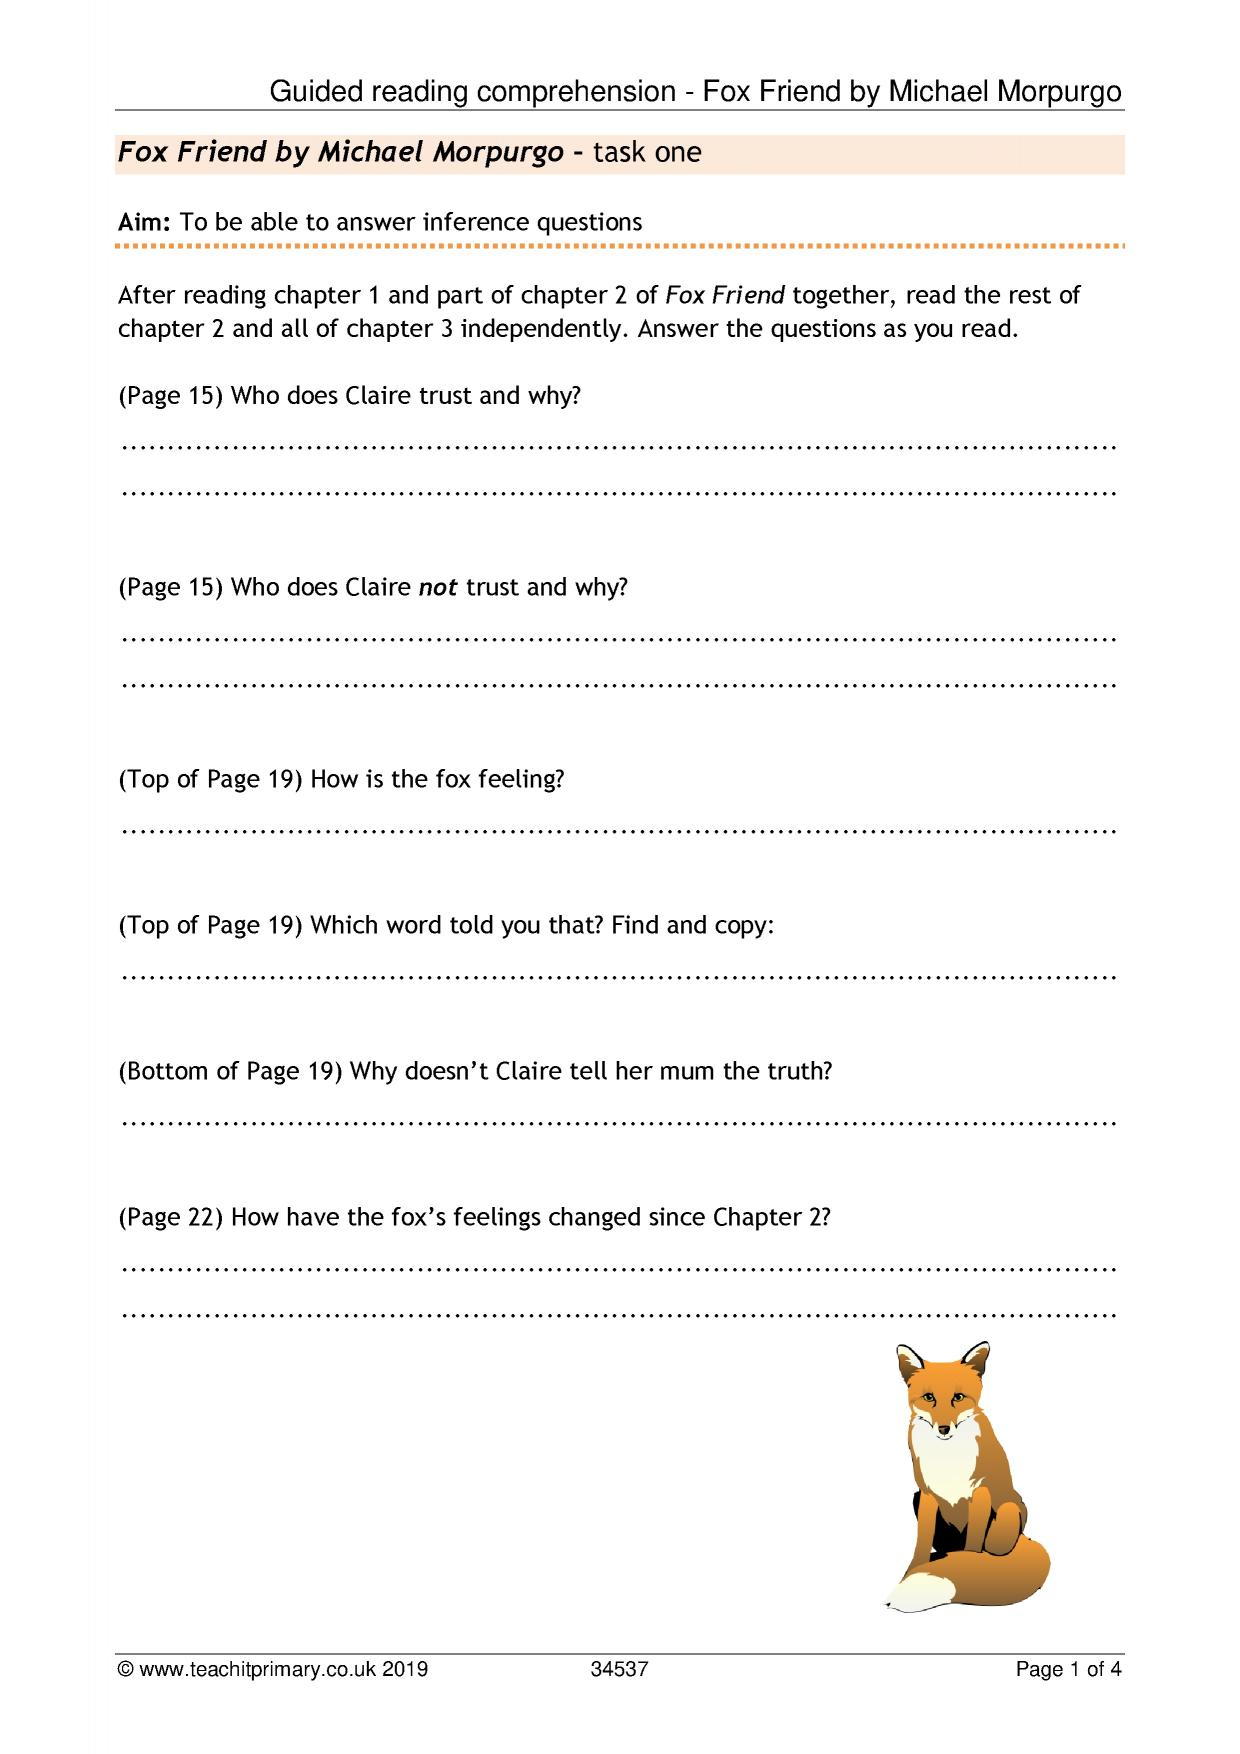 - Guided Reading Comprehension - Fox Friend By Michael Morpurgo